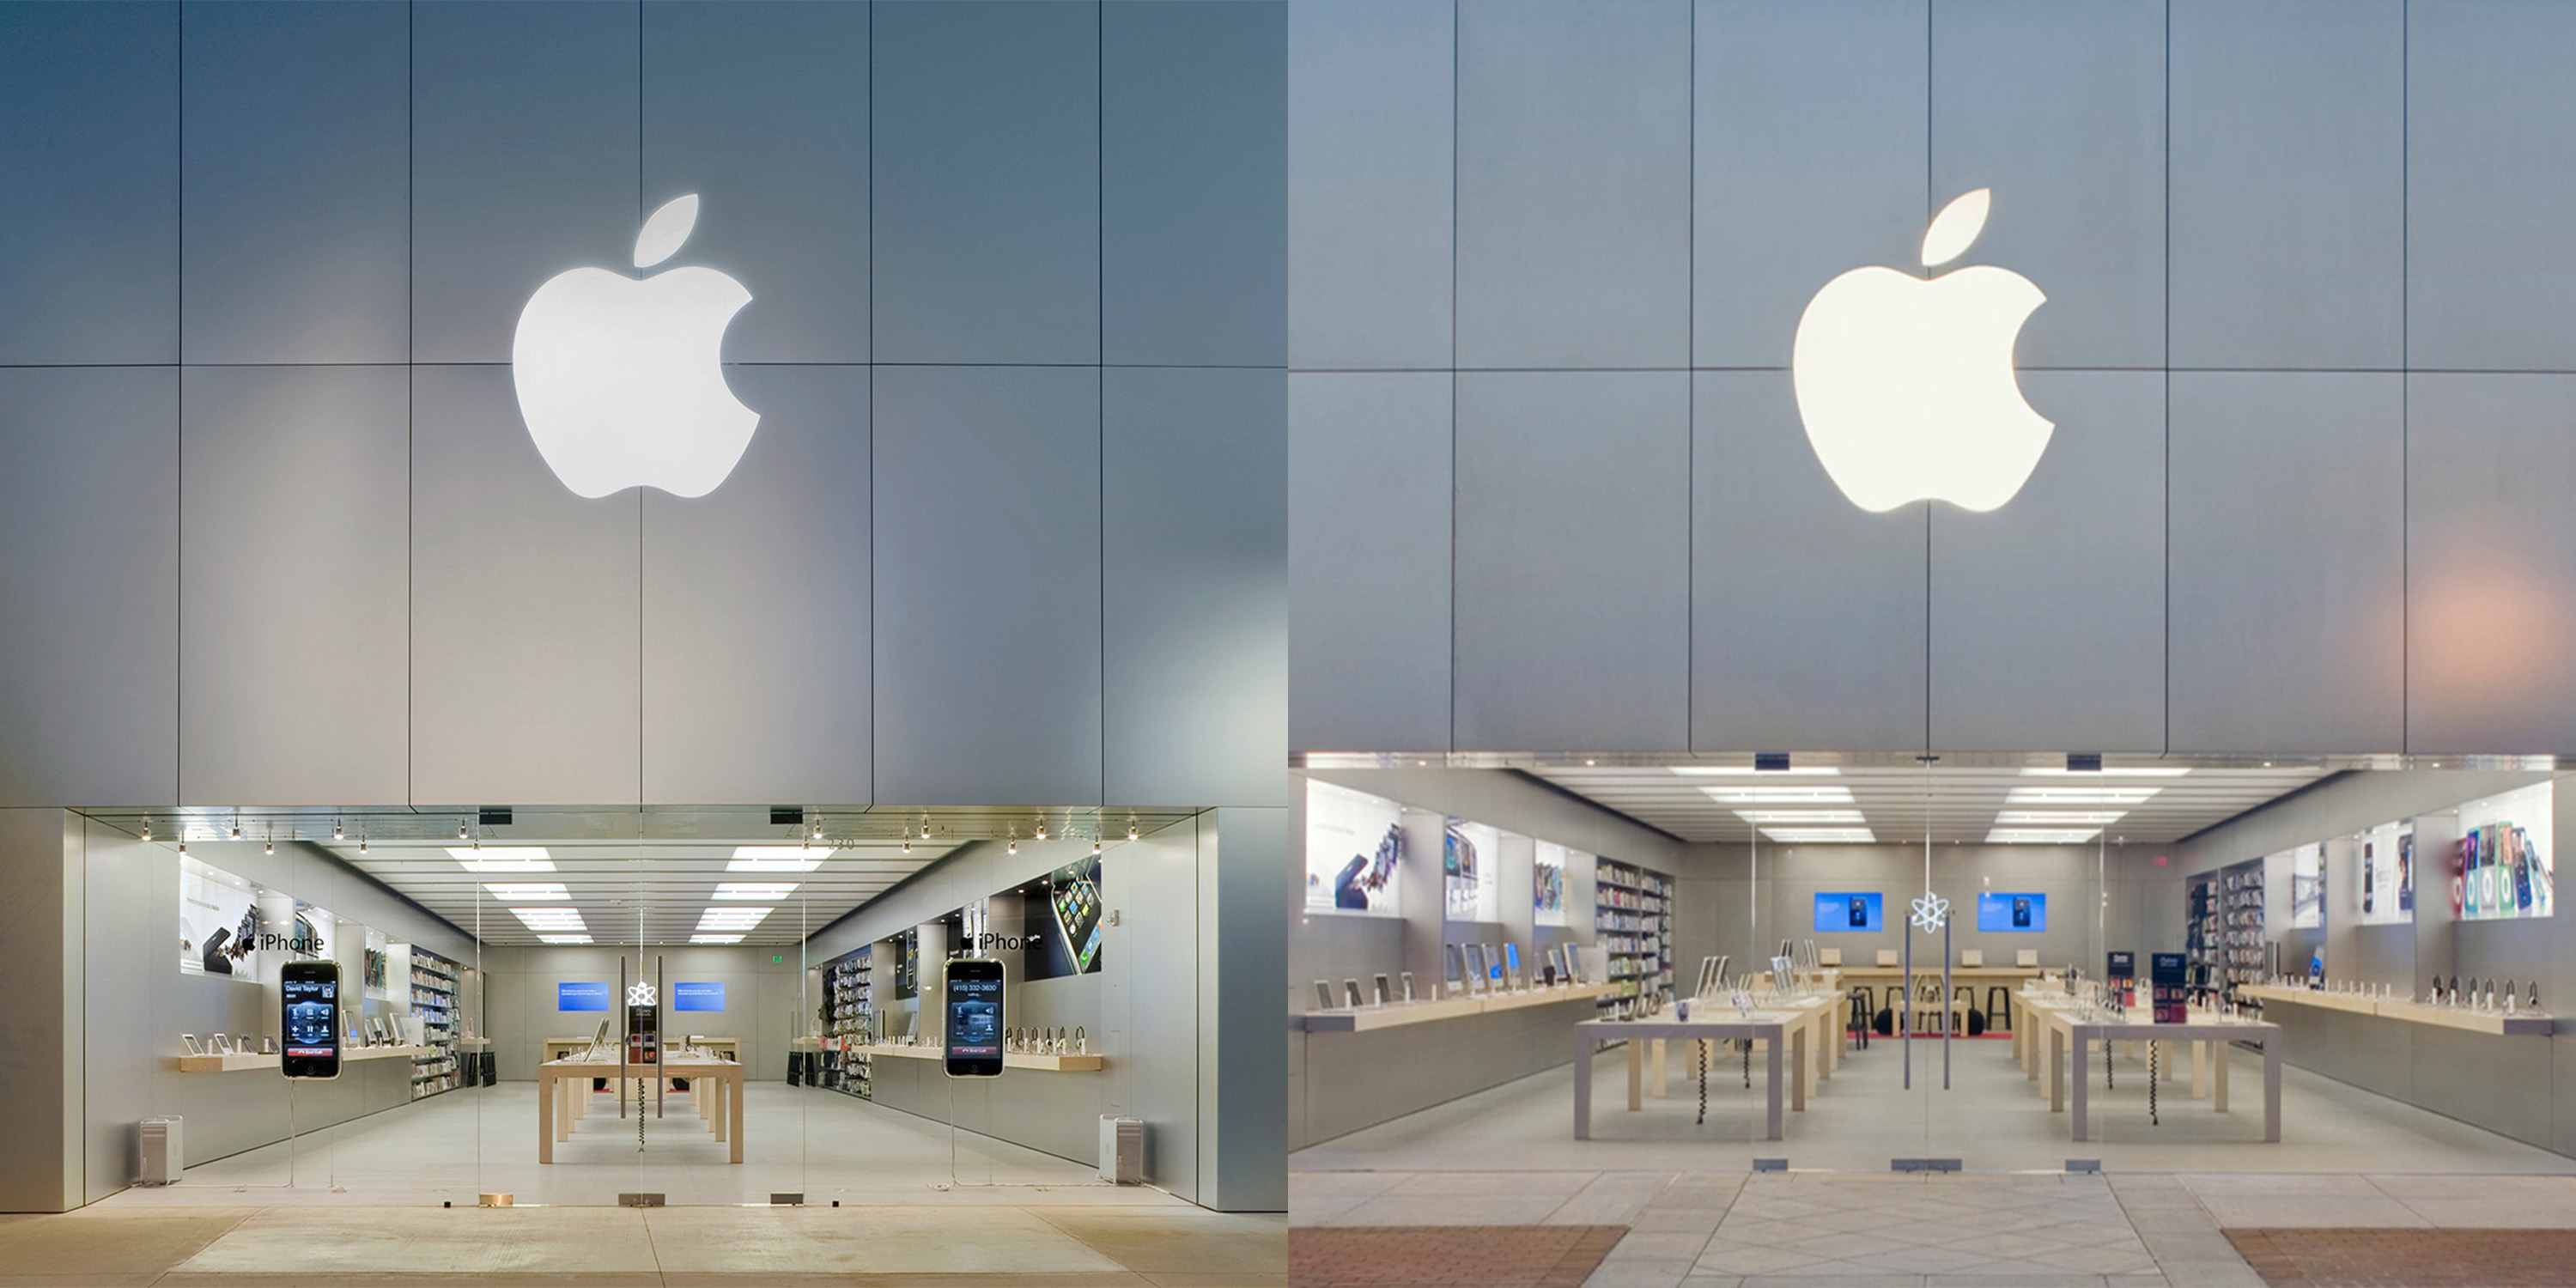 deer park and lehigh valley apple stores expanding to new locations on september 29th